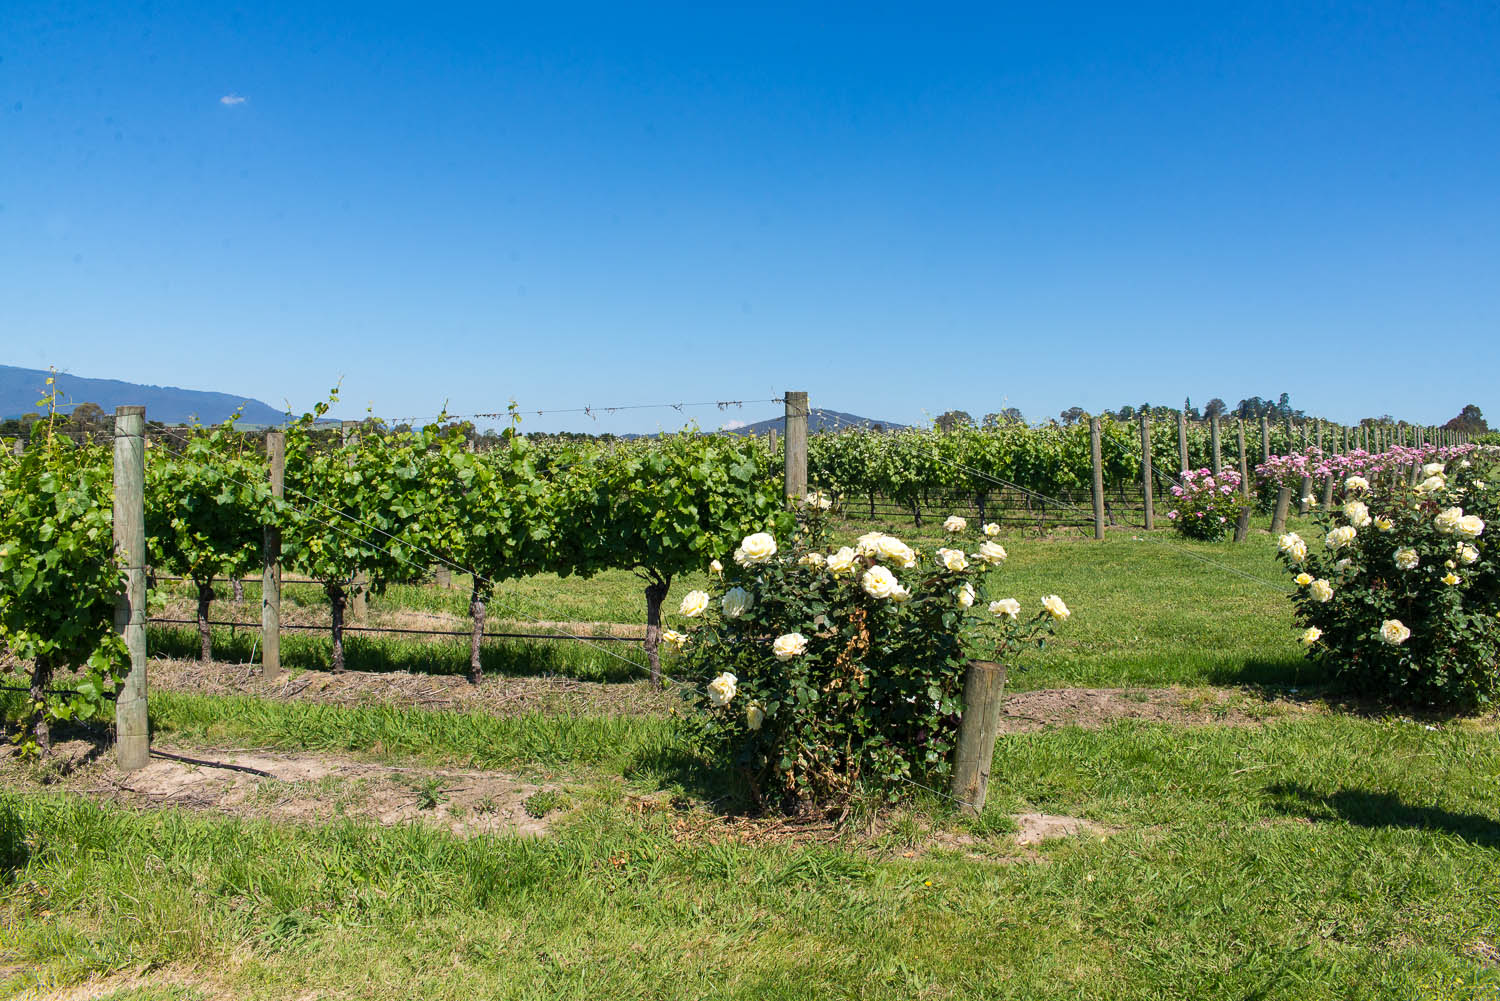 Yarra Valley Australia  City new picture : ... Balloon Flight and Wine Tour in Yarra Valley Australia Mondomulia